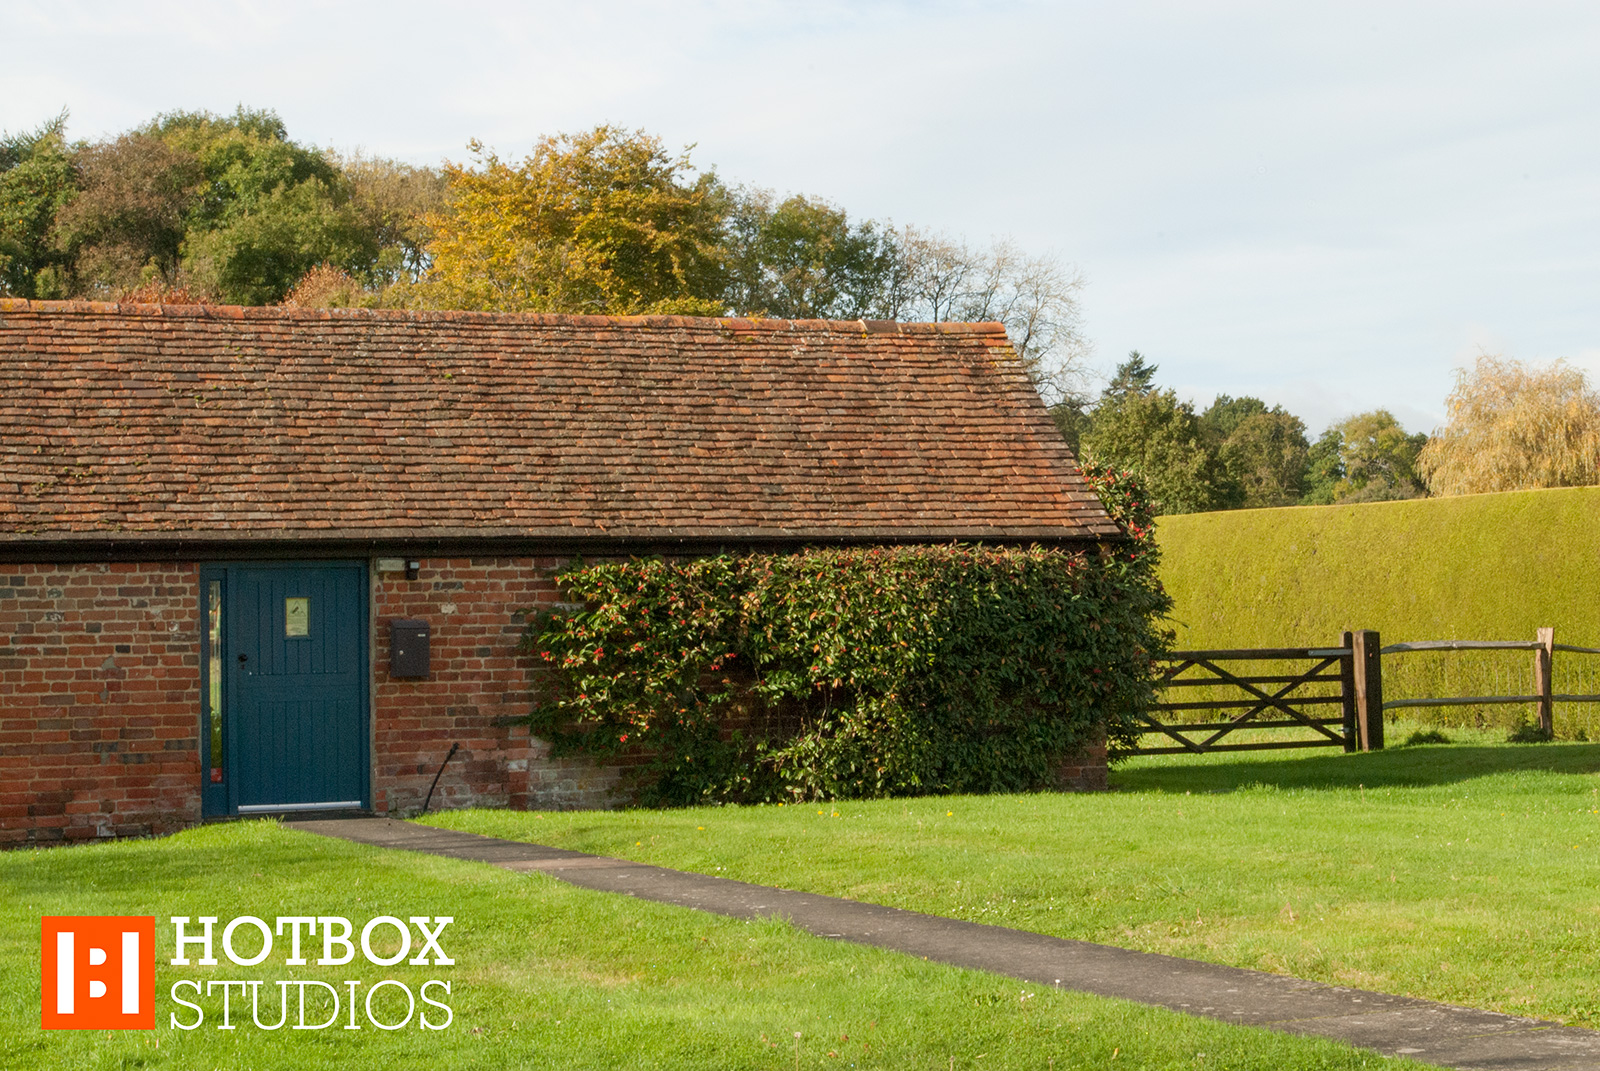 Hotbox Studios Elvetham Estate Hampshire - Front of building in sun v2014001 1600x1071Px72Dpi